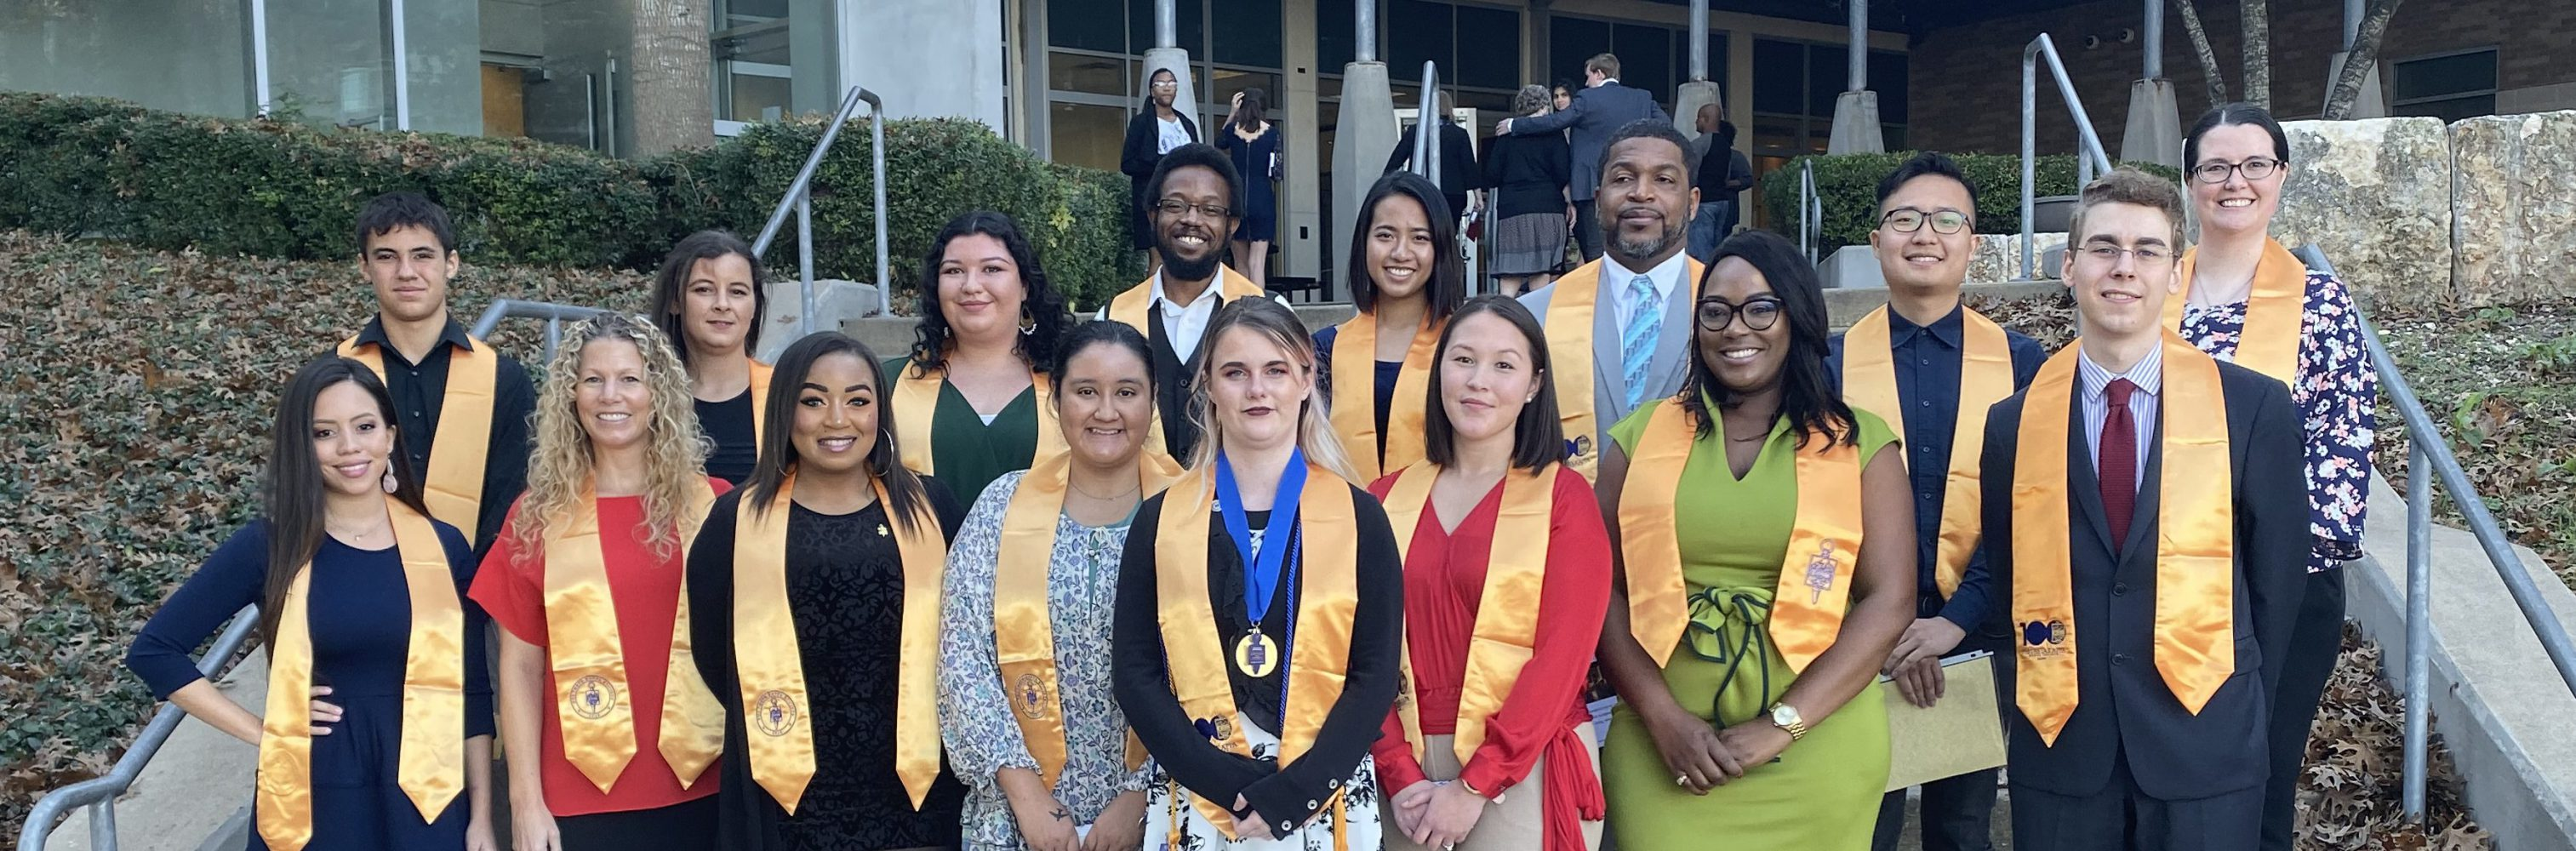 phi theta kappa gathers for a photo after an induction ceremony